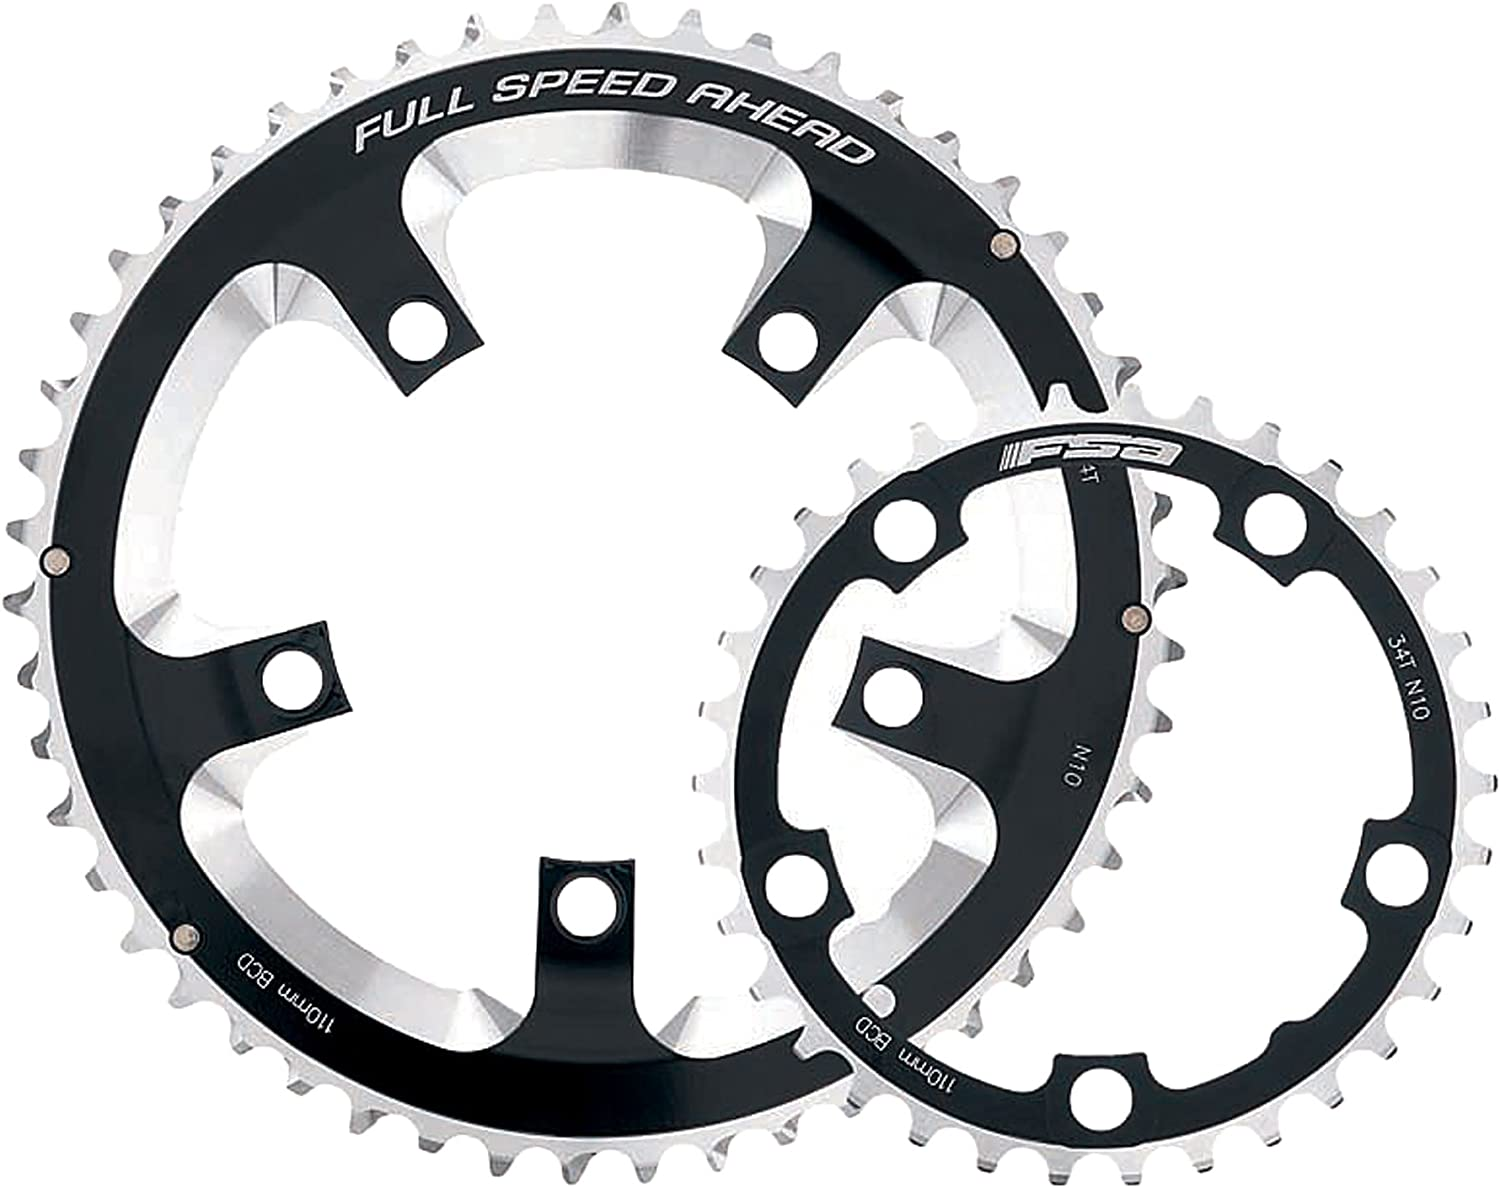 10//11sp. Outer Chainring FSA For Double, BCD: 110mm 46T 5 Bolts Pro Road